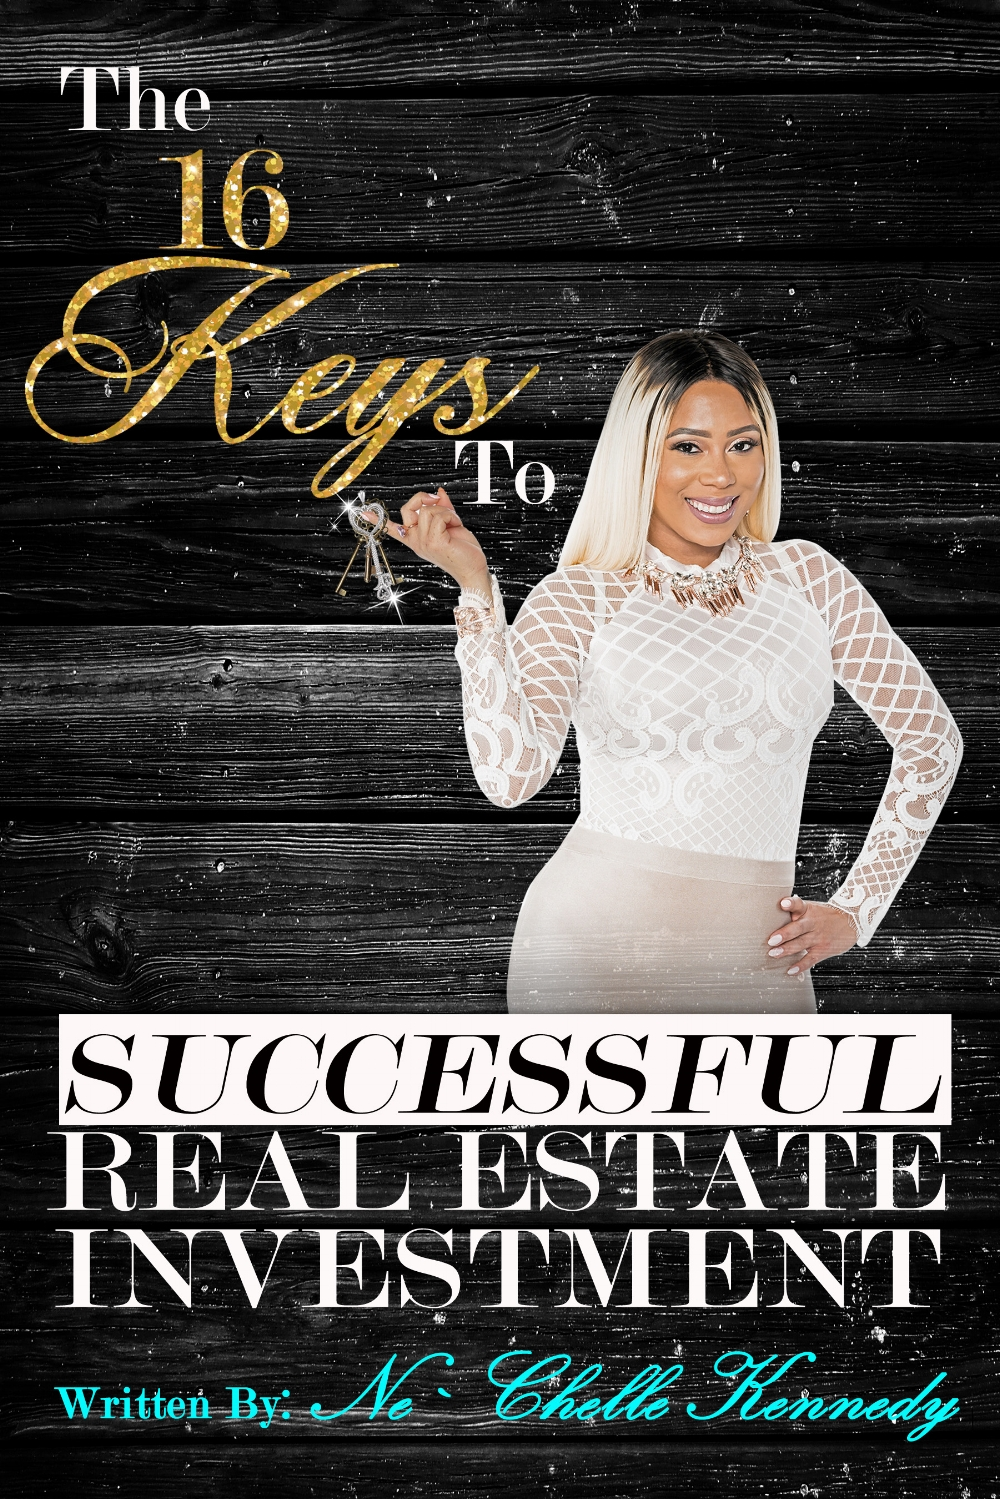 Press Kit - The 16 Keys to Successful Real Estate Investment